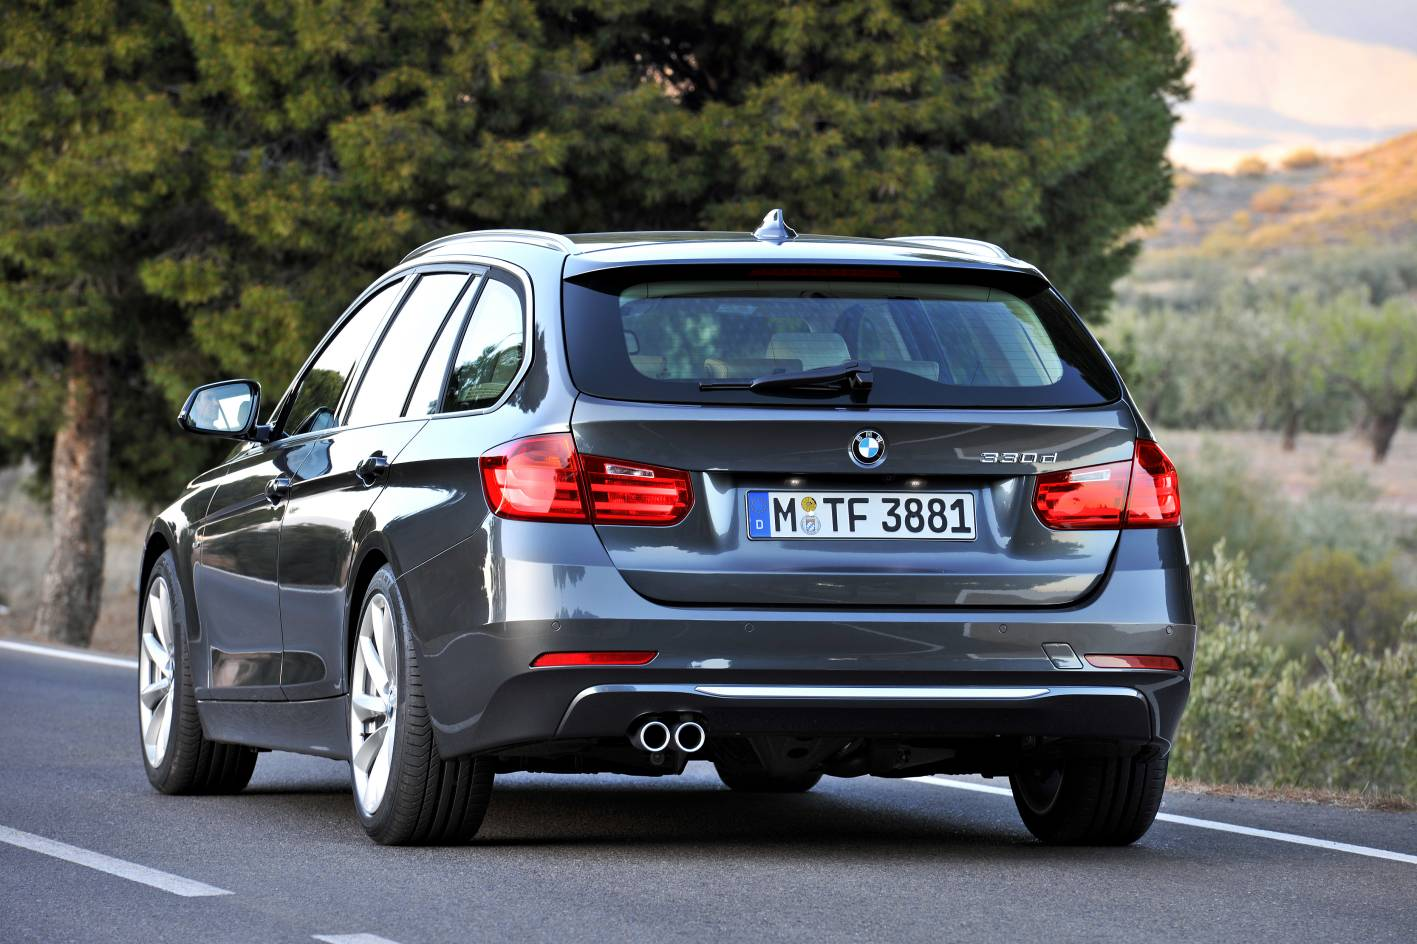 BMW 3 series 330d 2012 photo - 11